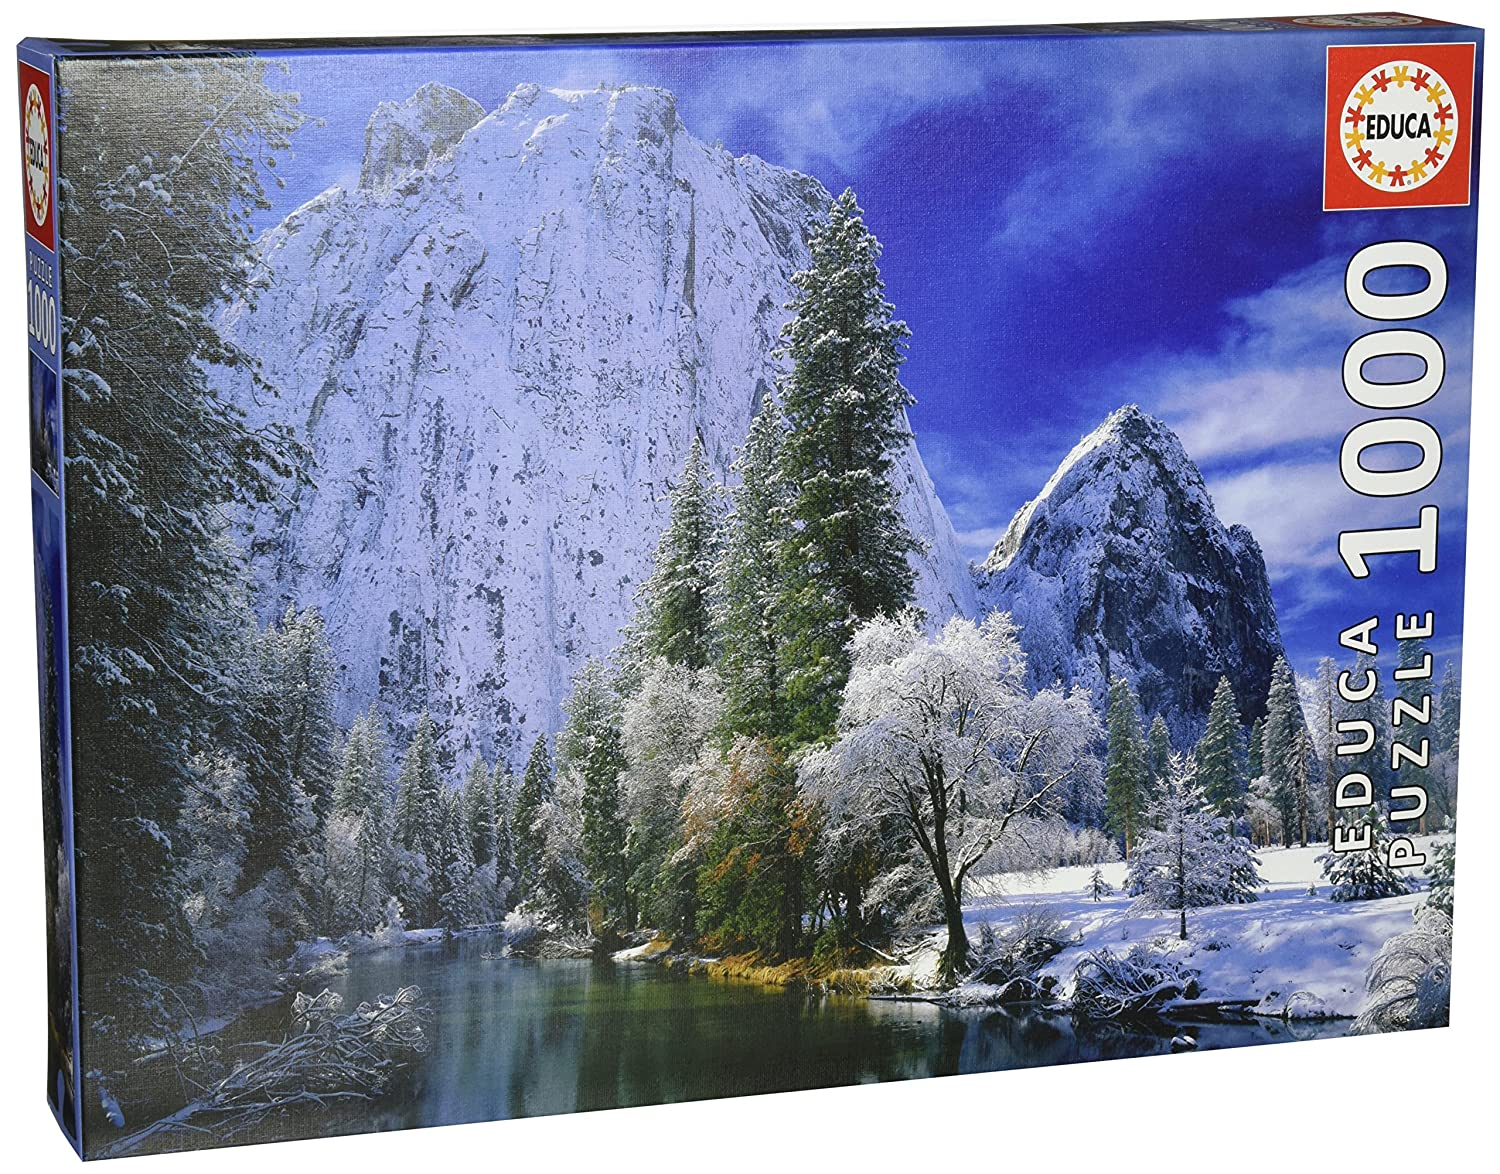 Yosemite Park Winter 1000-Piece Puzzle by Educa